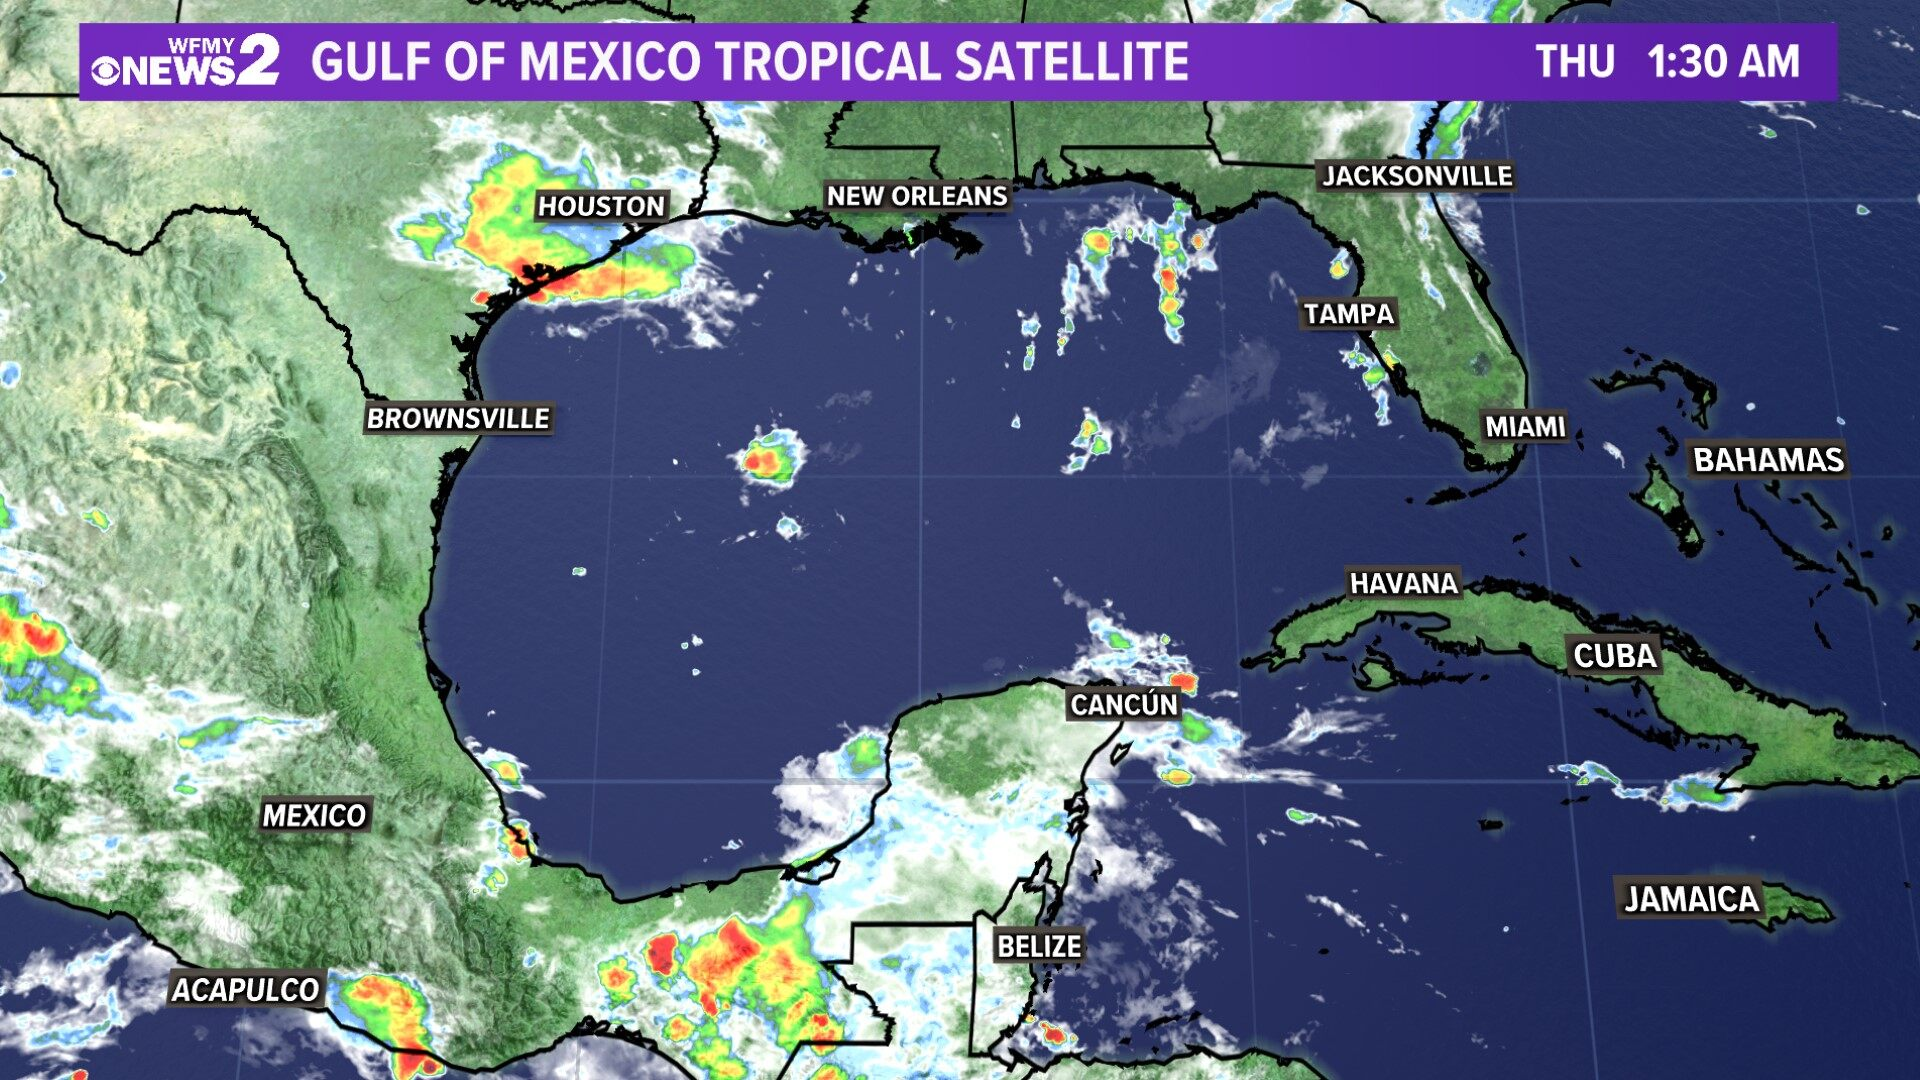 Tropical Satellite Gulf of Mexico